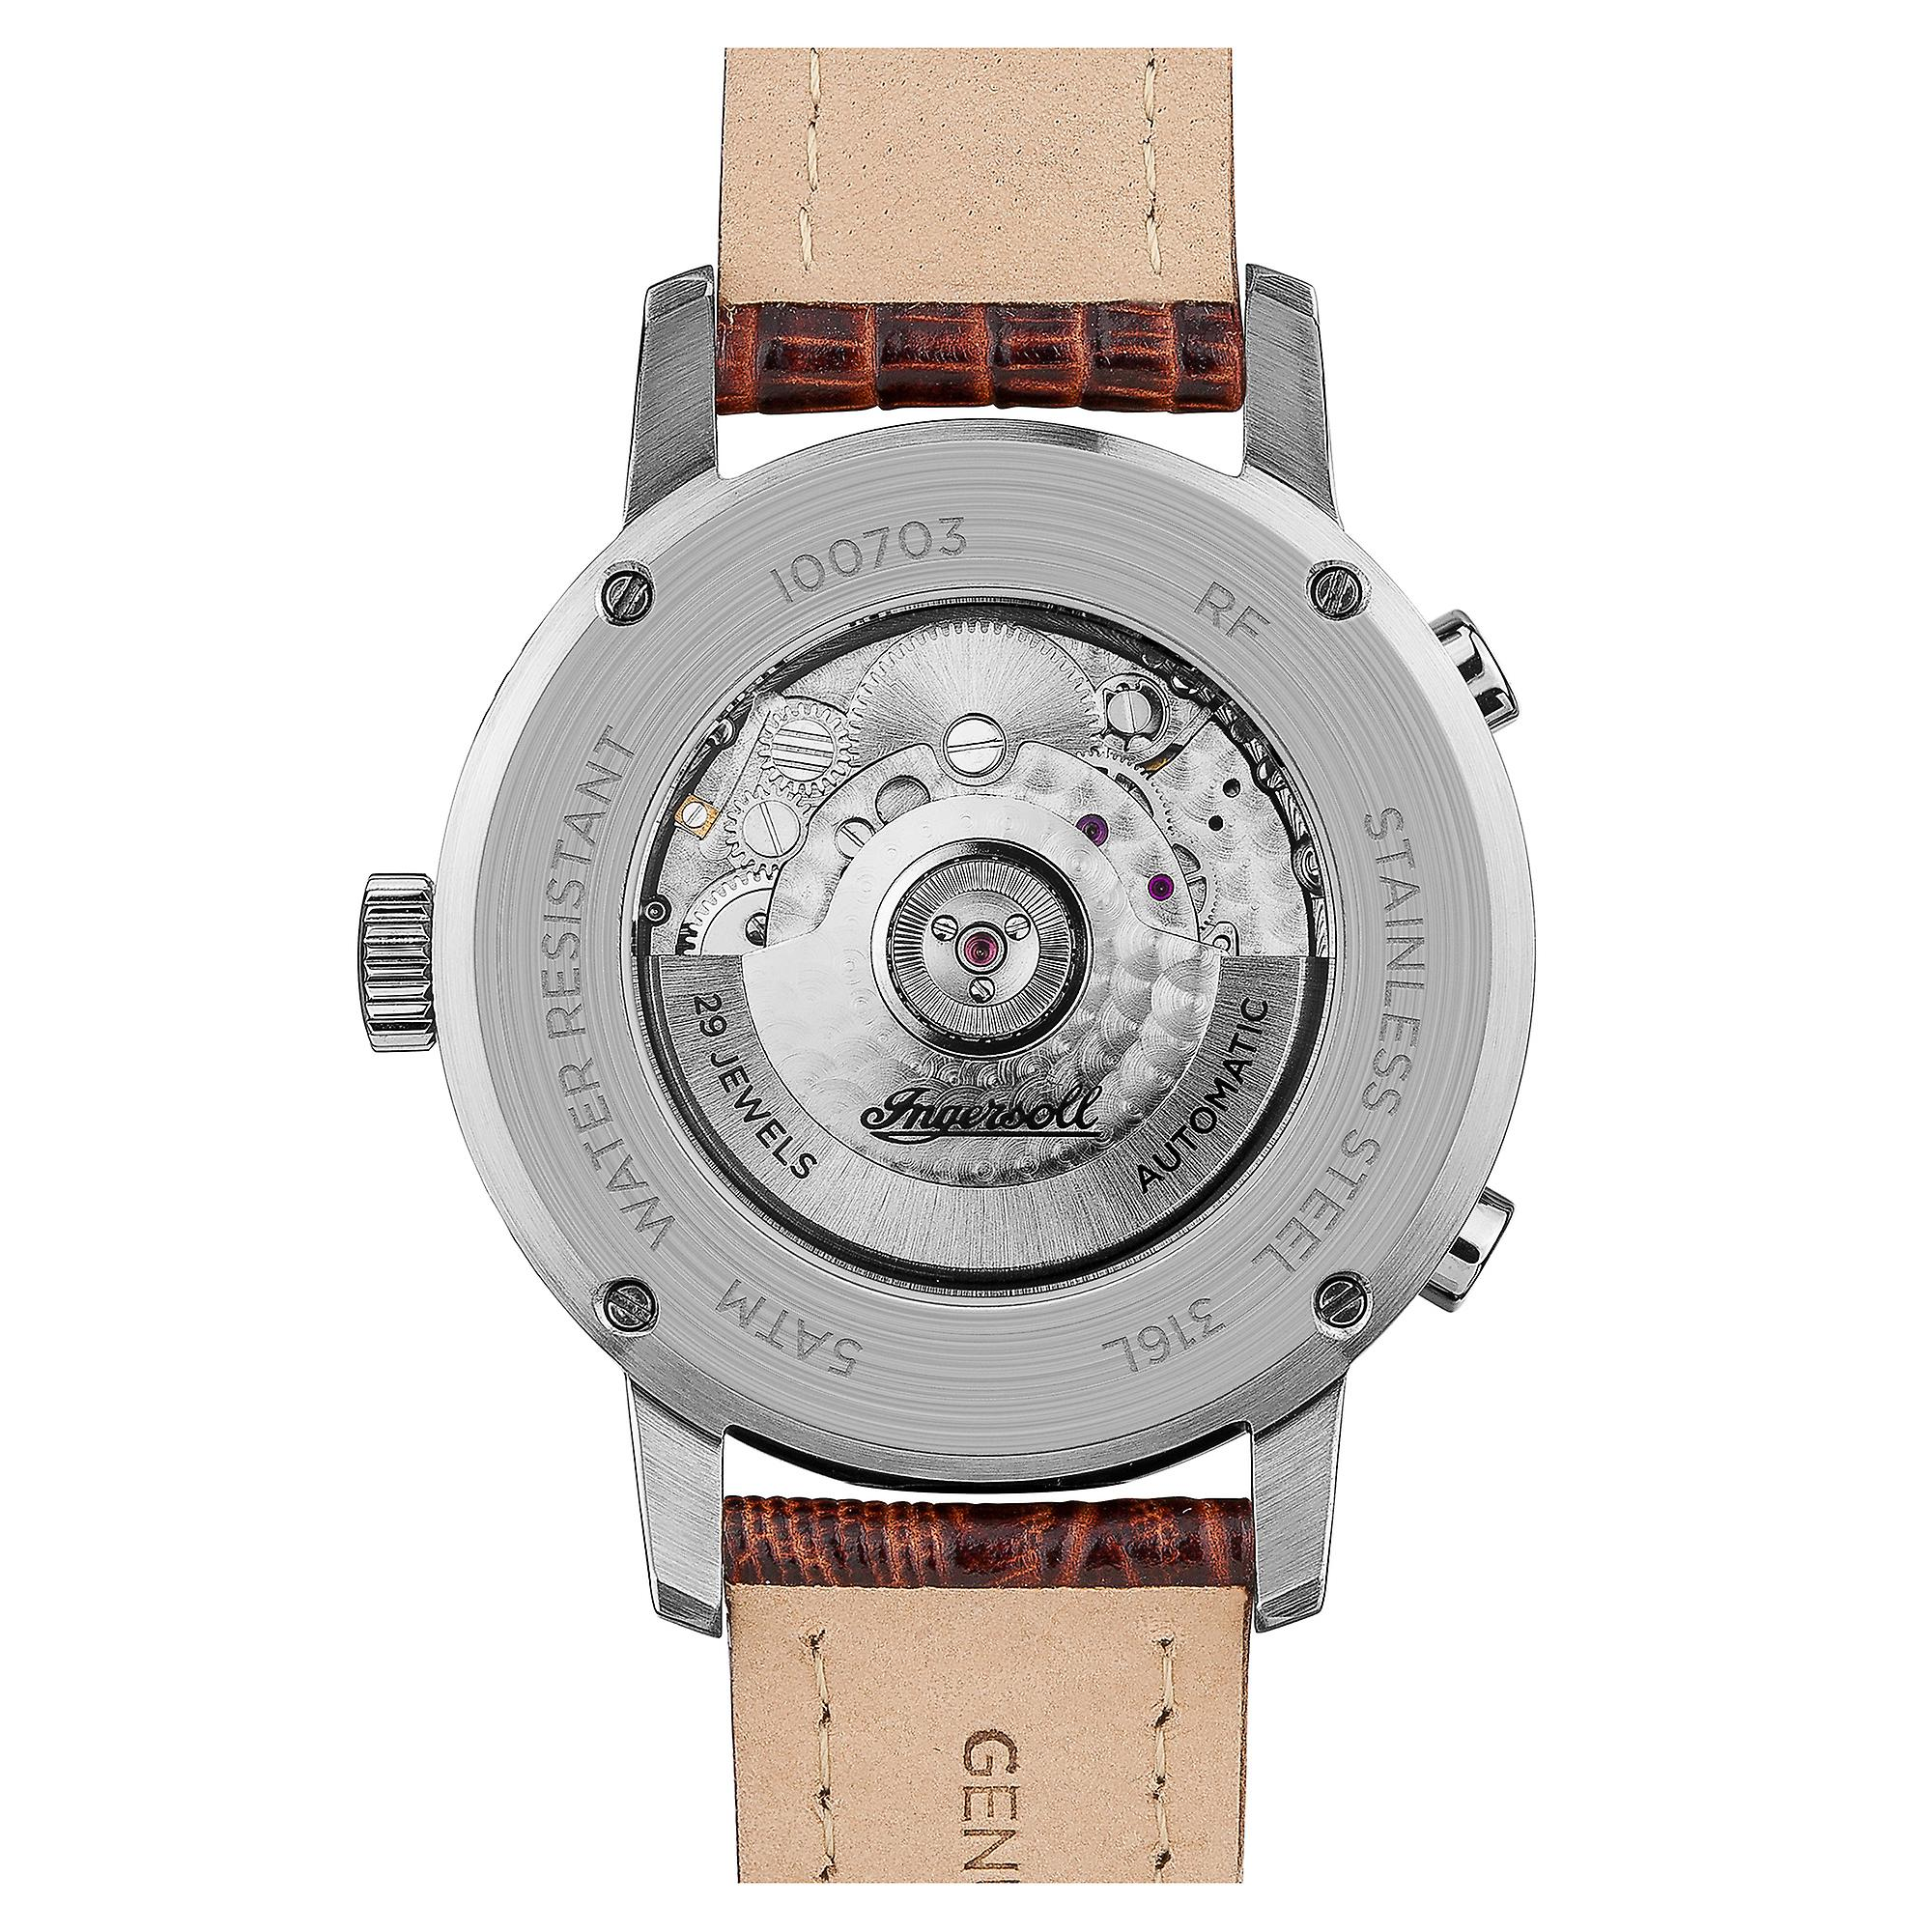 Ingersoll The Grafton Automatic Balance Wheel Blue Dial Brown Leather Strap Mens Watch I00703 42mm